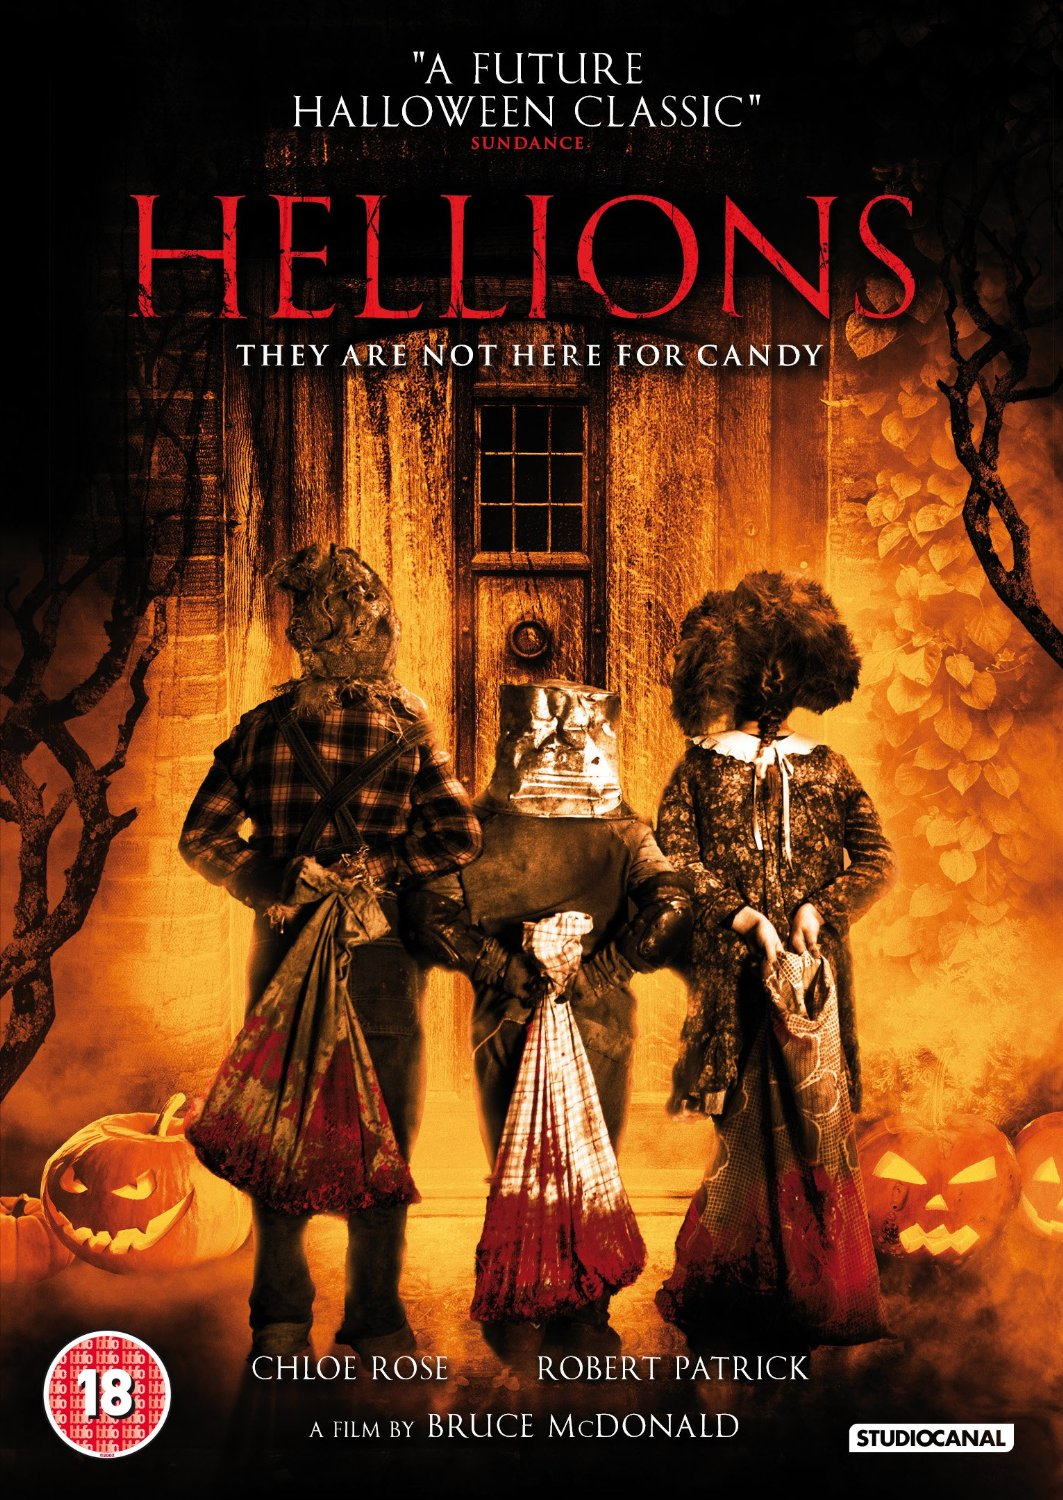 Hellions DVD review: A beautifully creepy Halloween horror